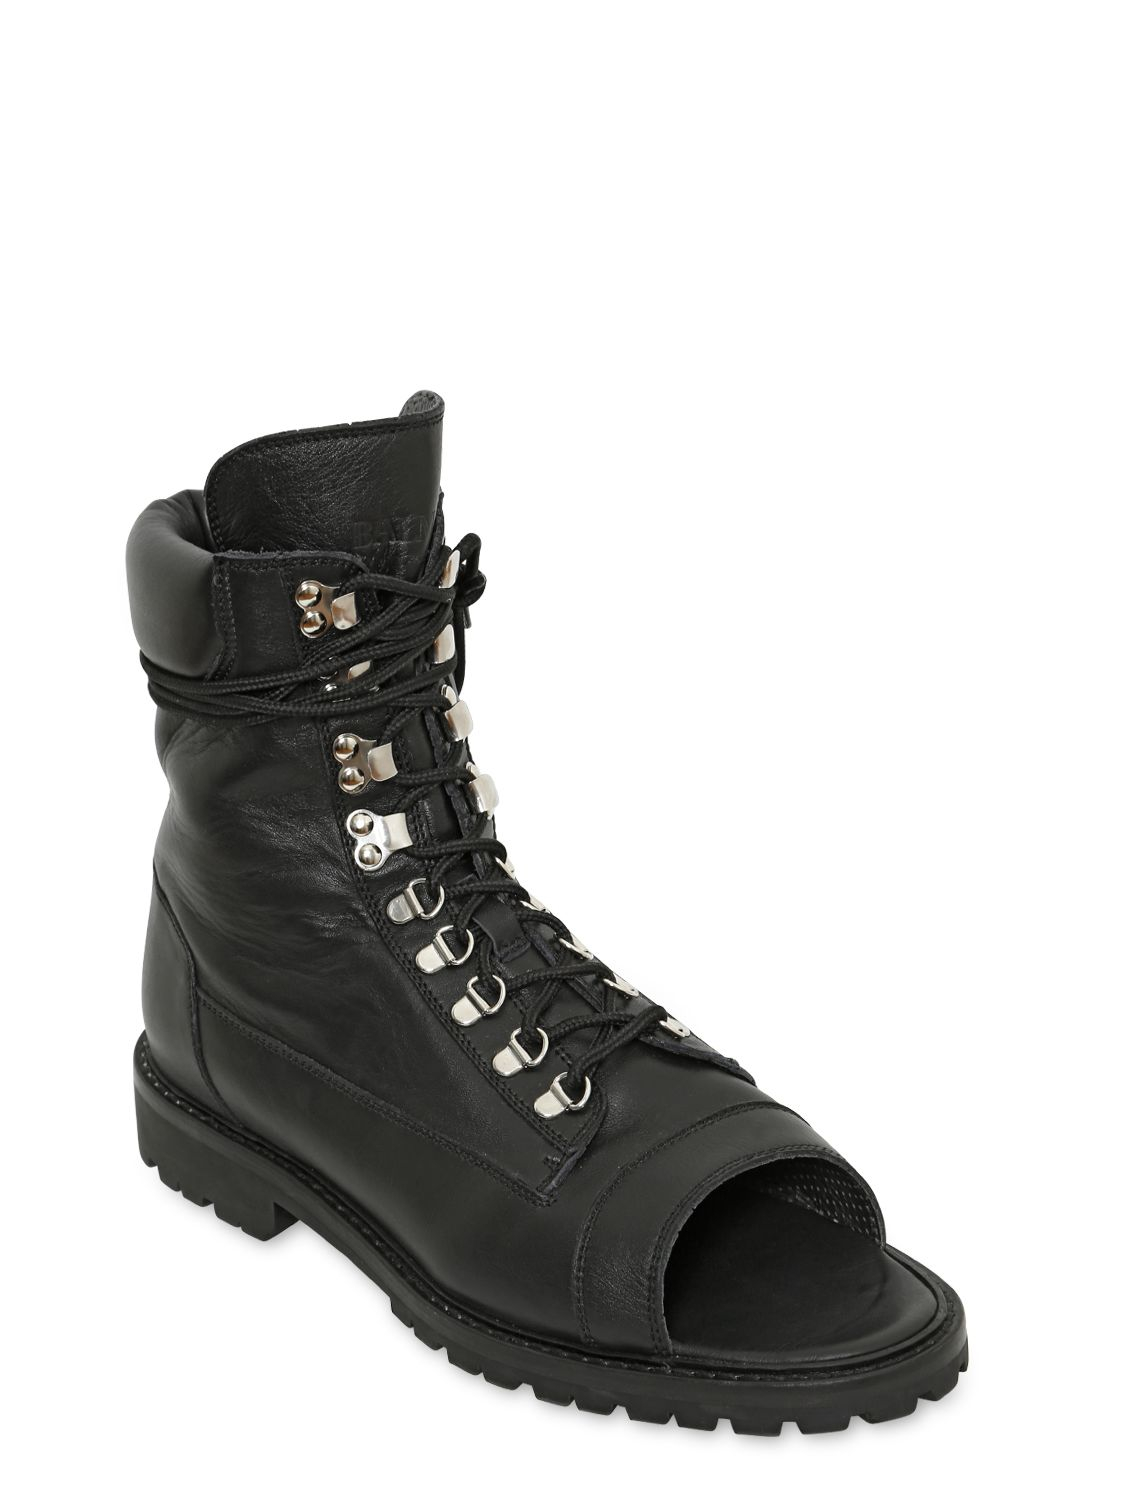 Balmain Open Toe Leather Combat Boots In Black Lyst